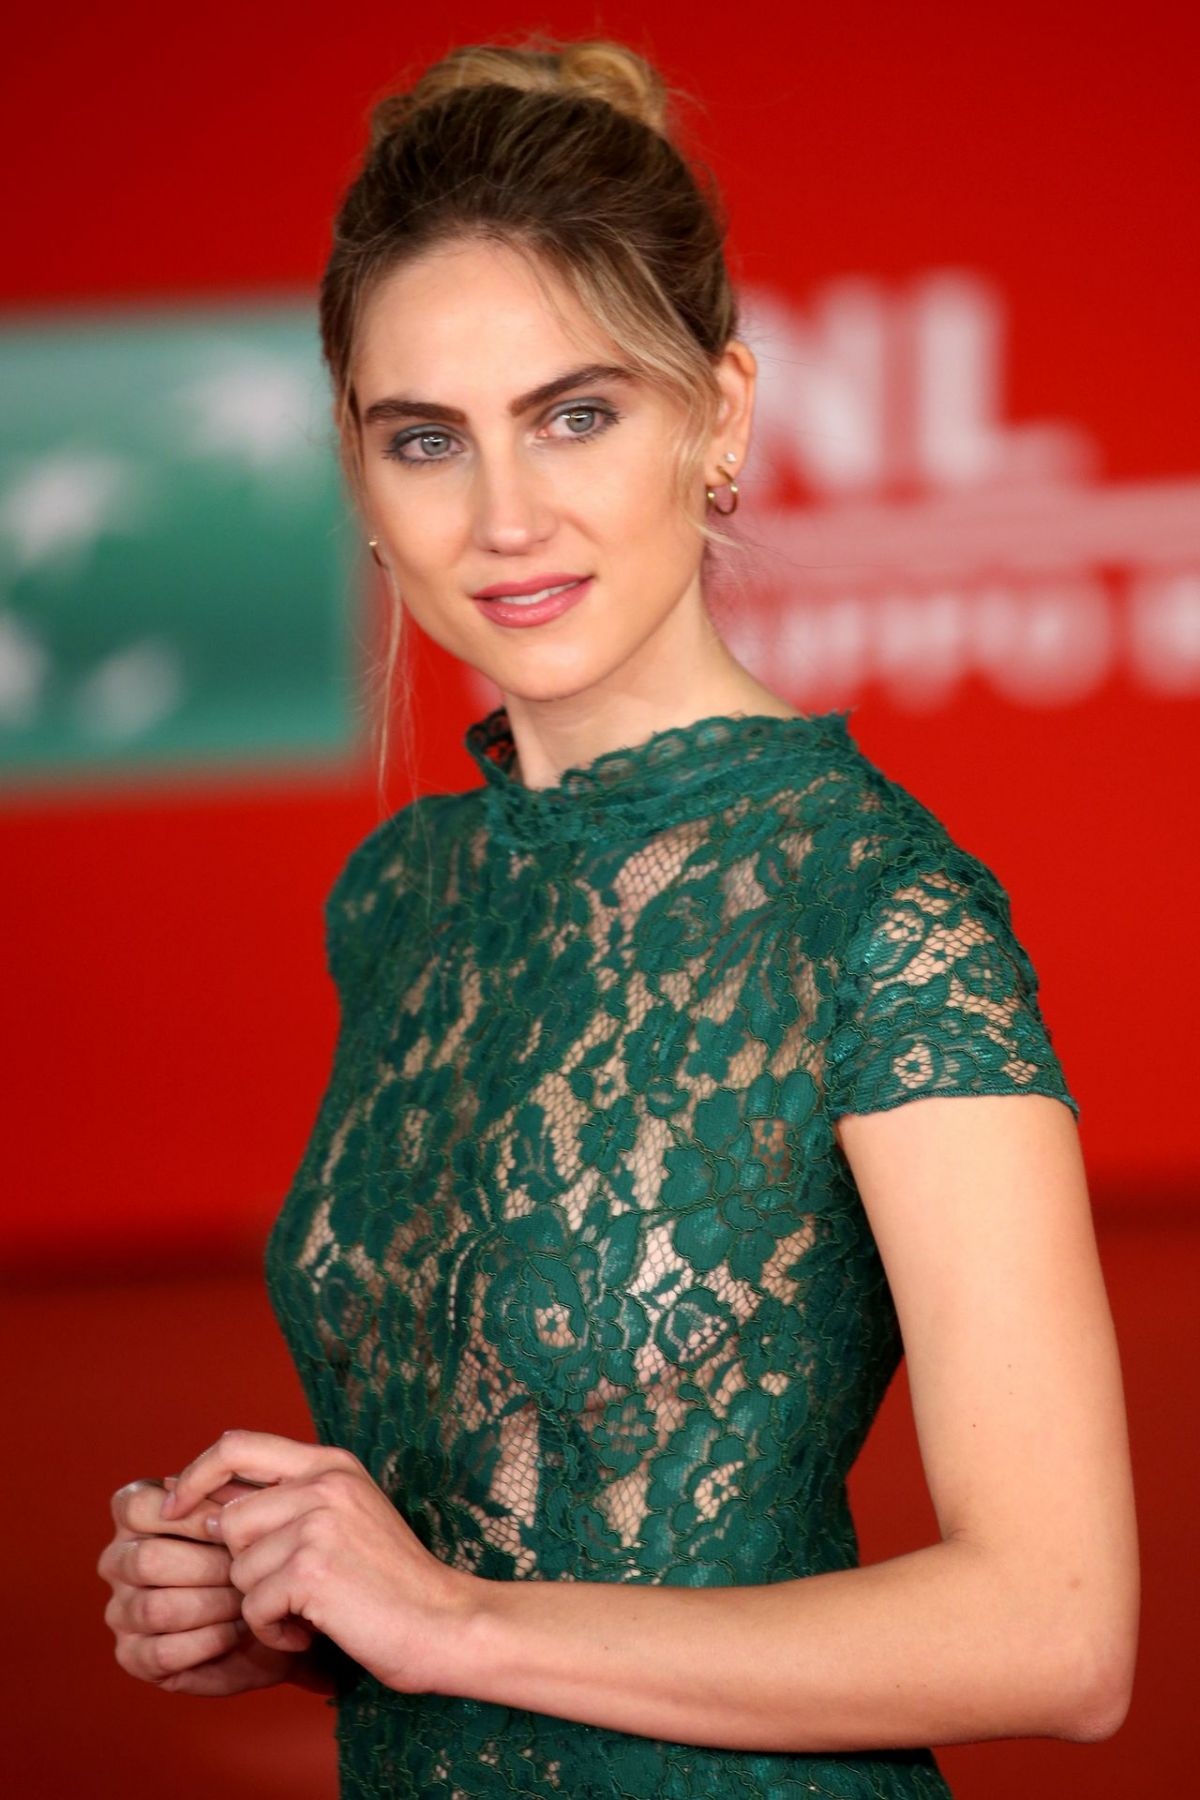 MIRIAM GALANTI at The Irishman Premiere in Rome 10/21/2019 – HawtCelebs